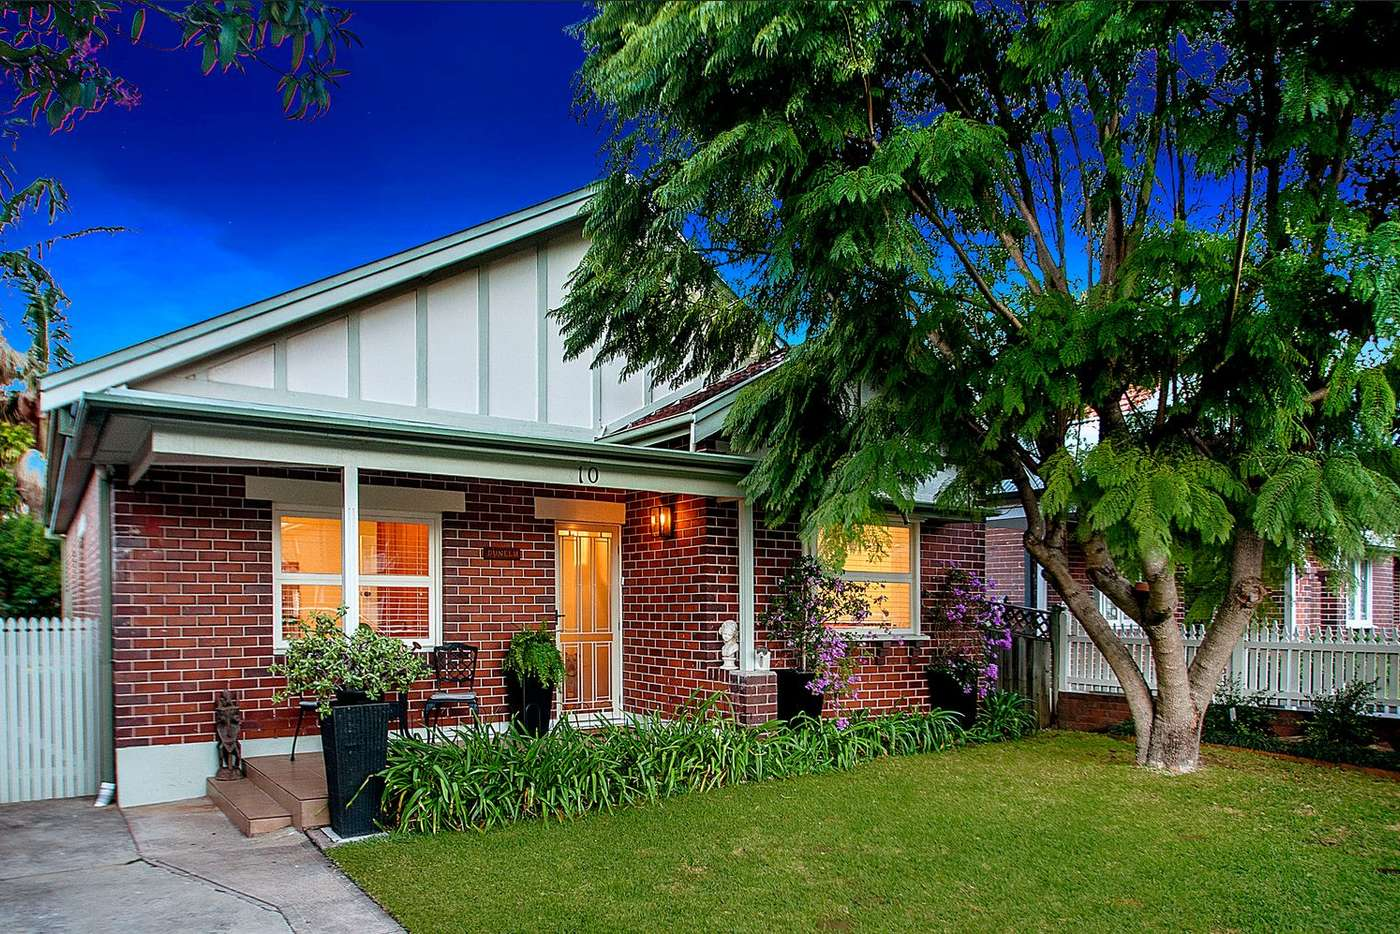 Main view of Homely house listing, 10 Coralie Street, Wareemba NSW 2046